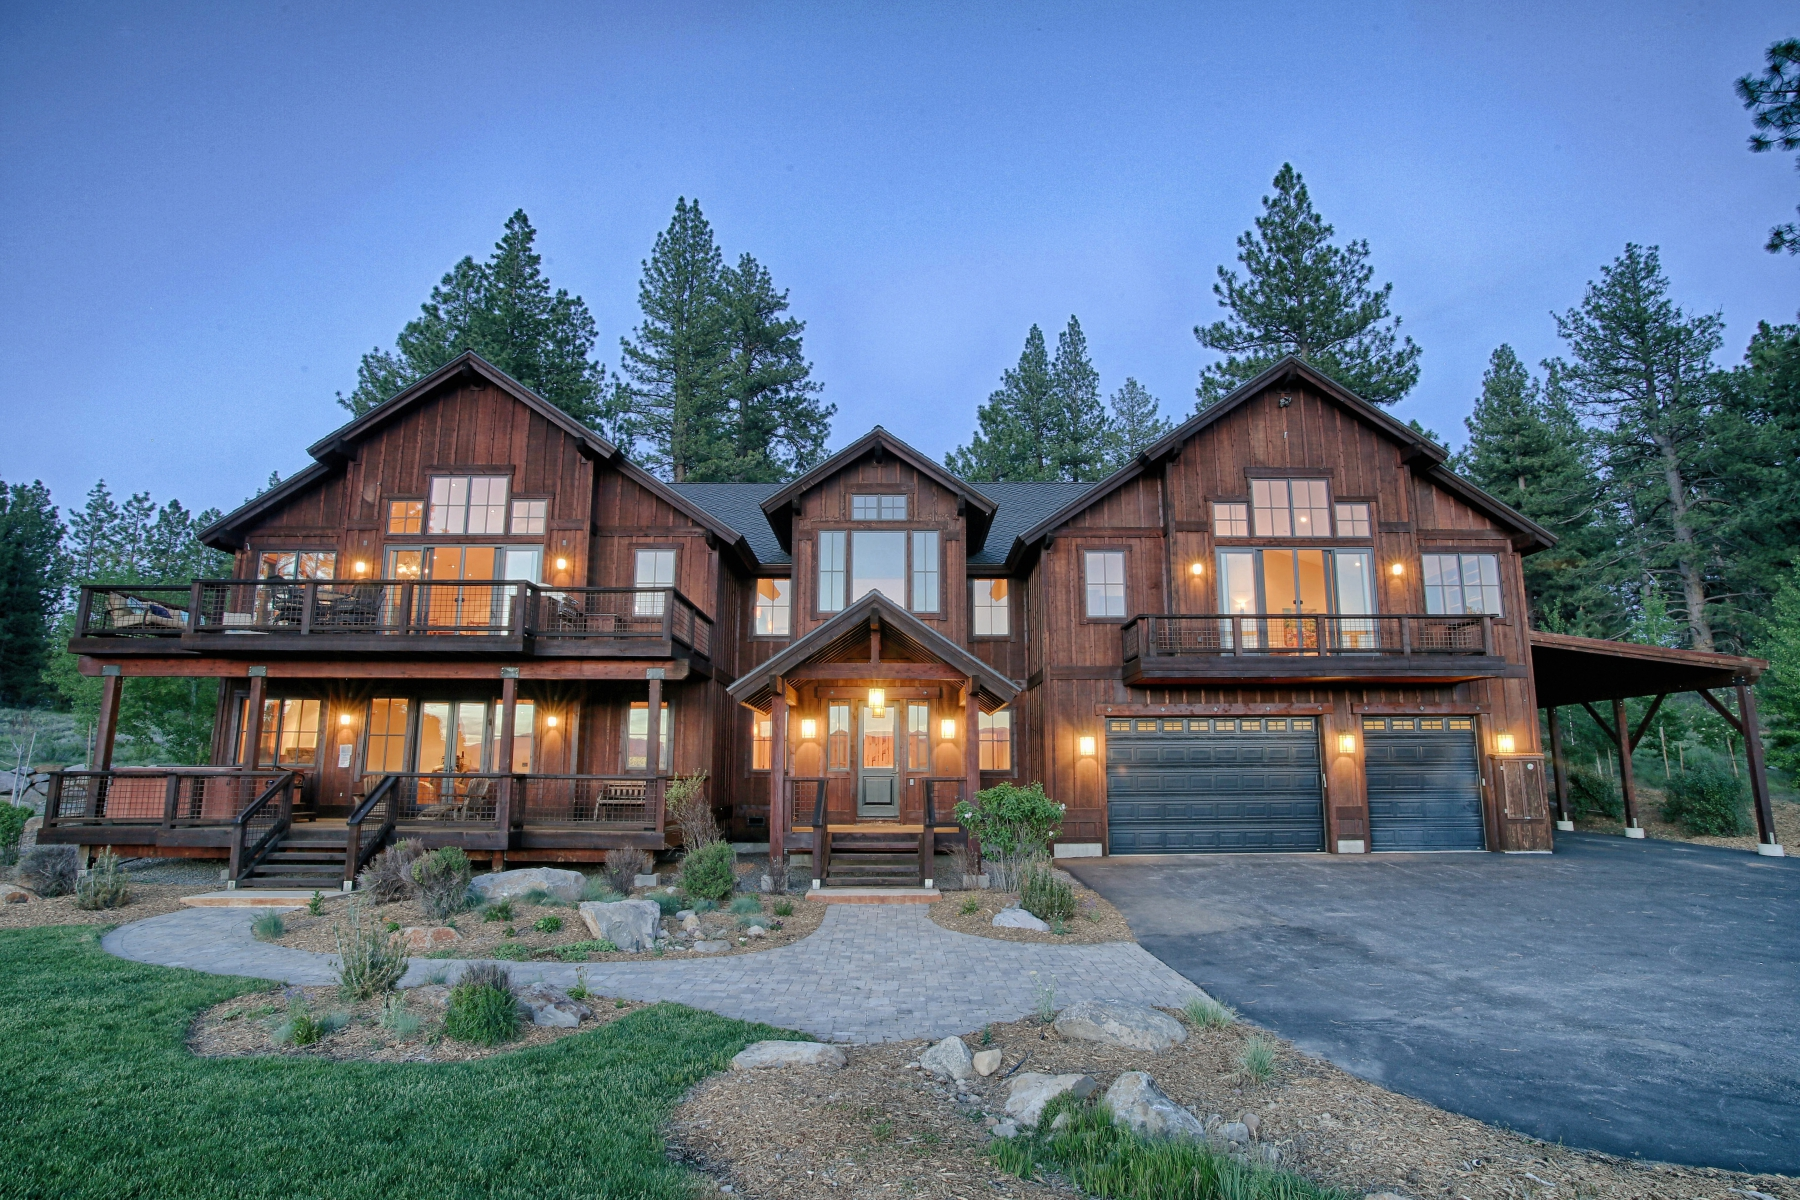 Single Family Home for Active at 12568 Union Mills Road Truckee, California 96161 United States